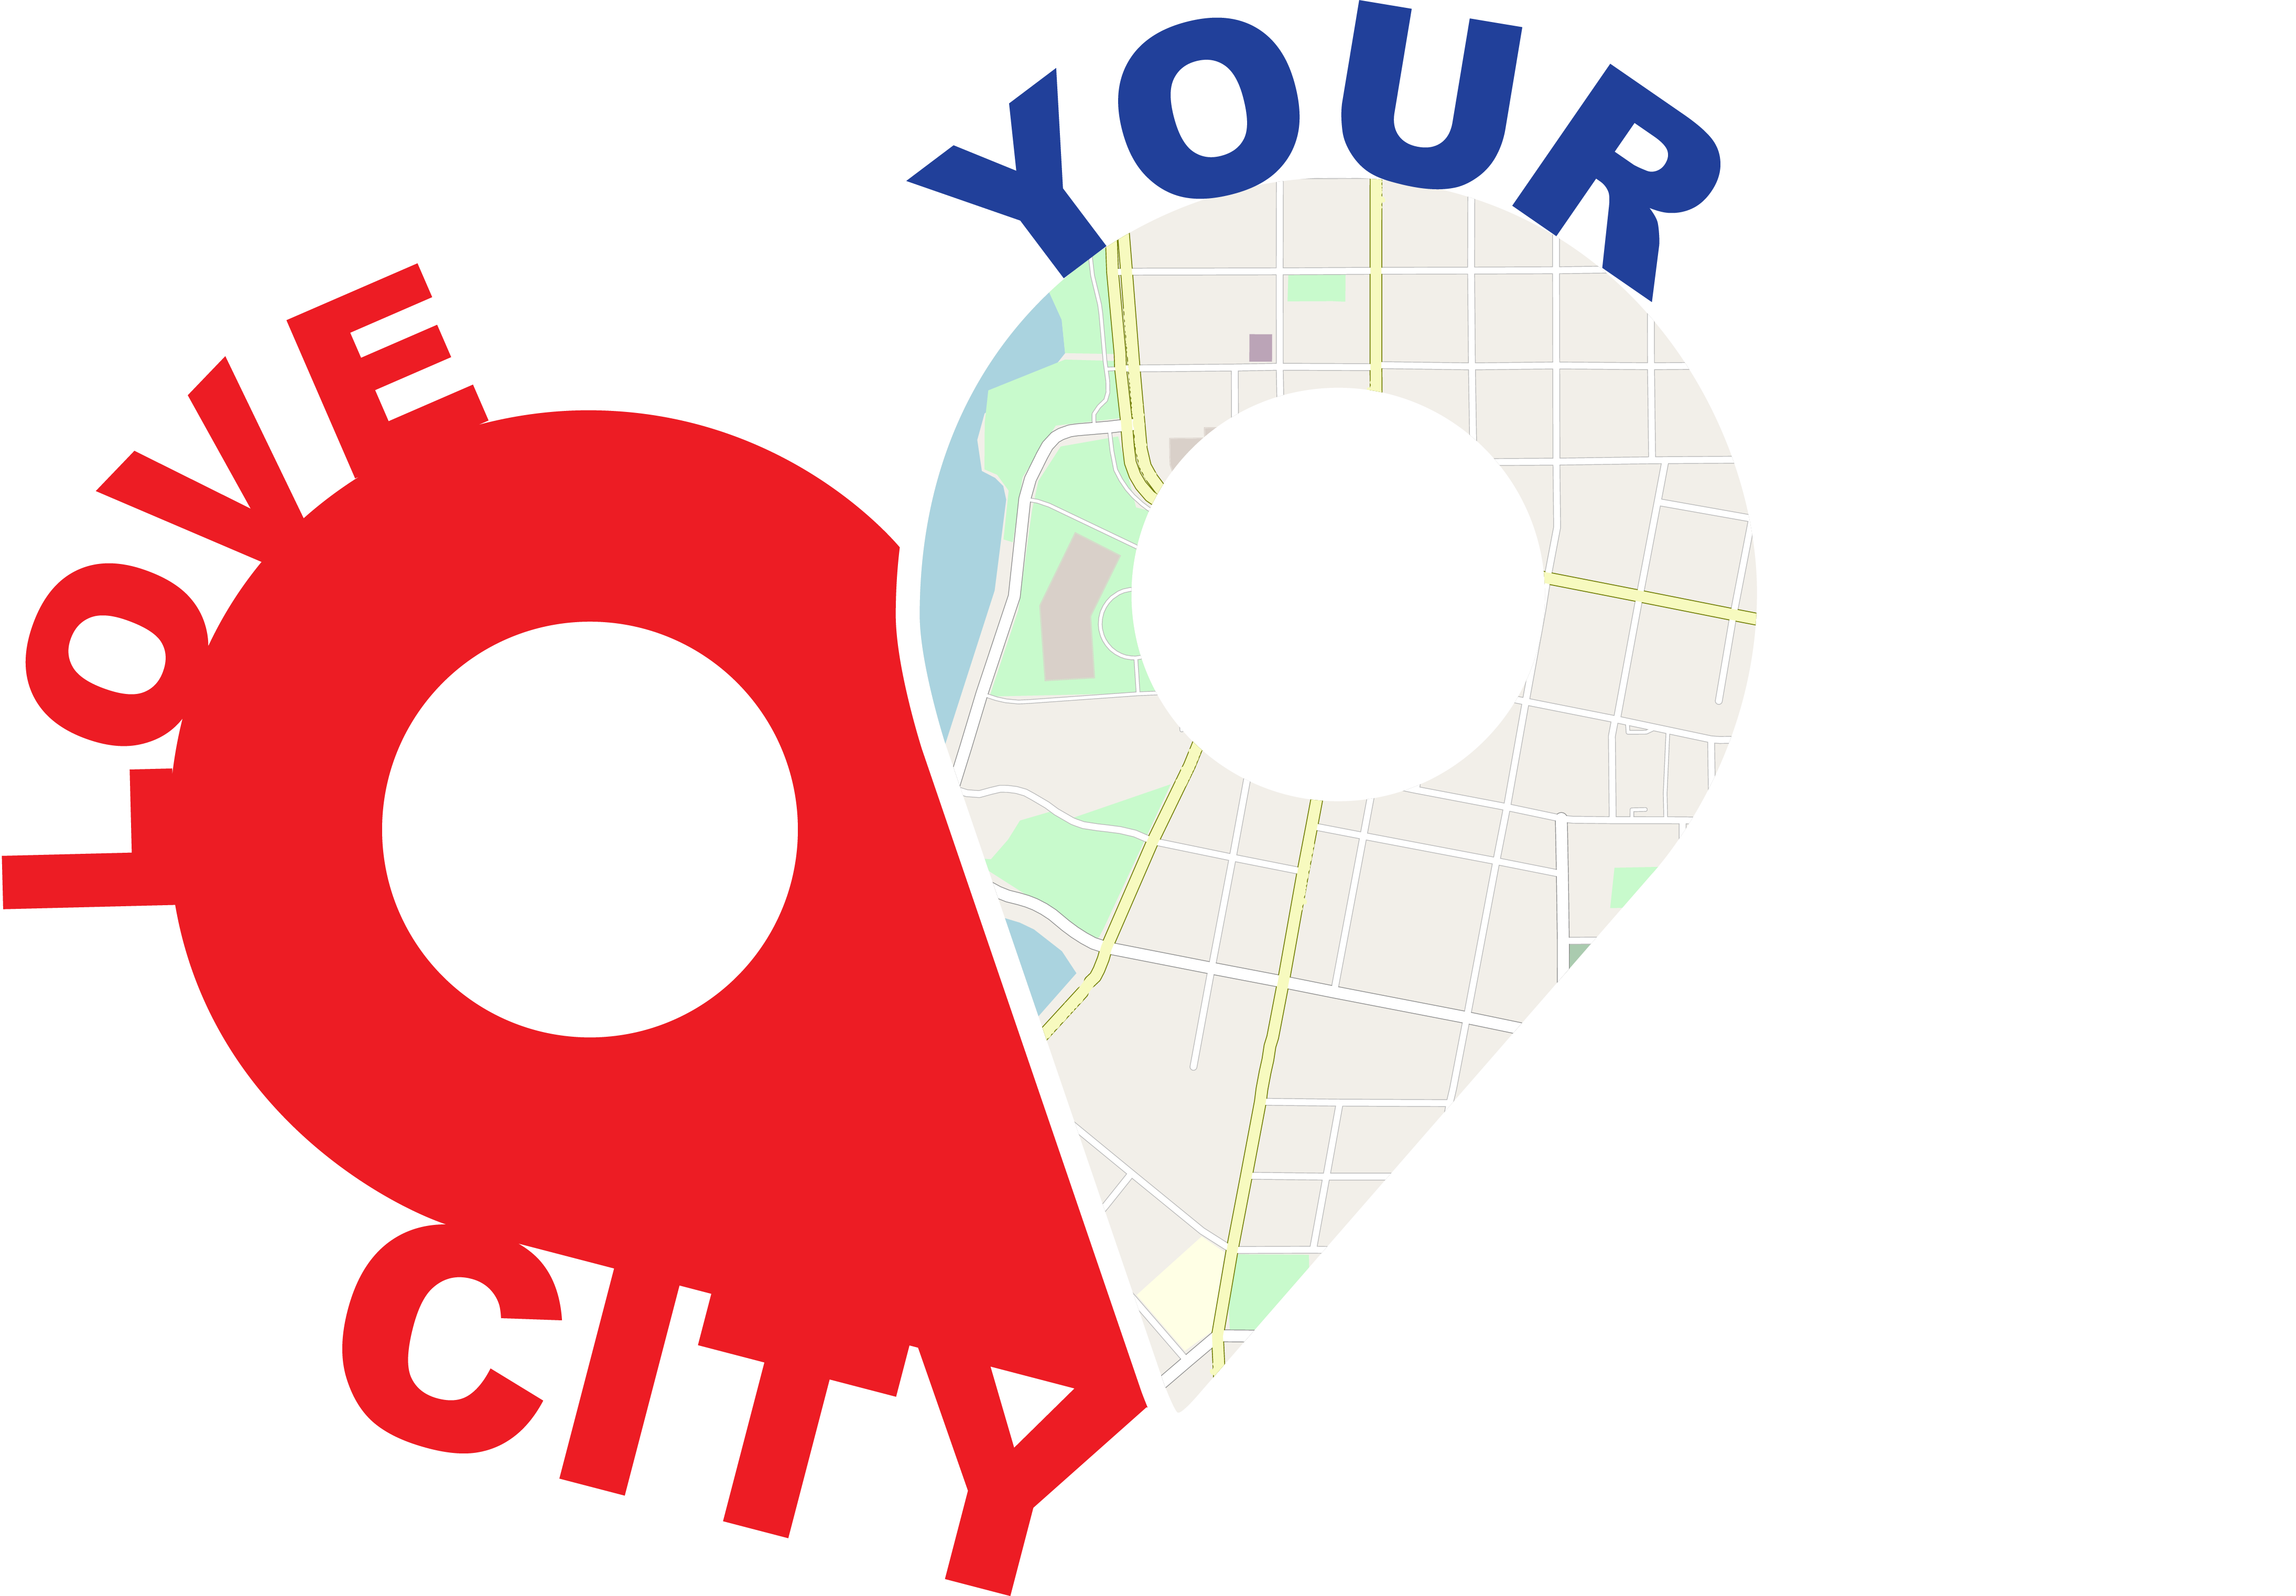 City of Lake Charles to host Love your City: Building a City of Champions